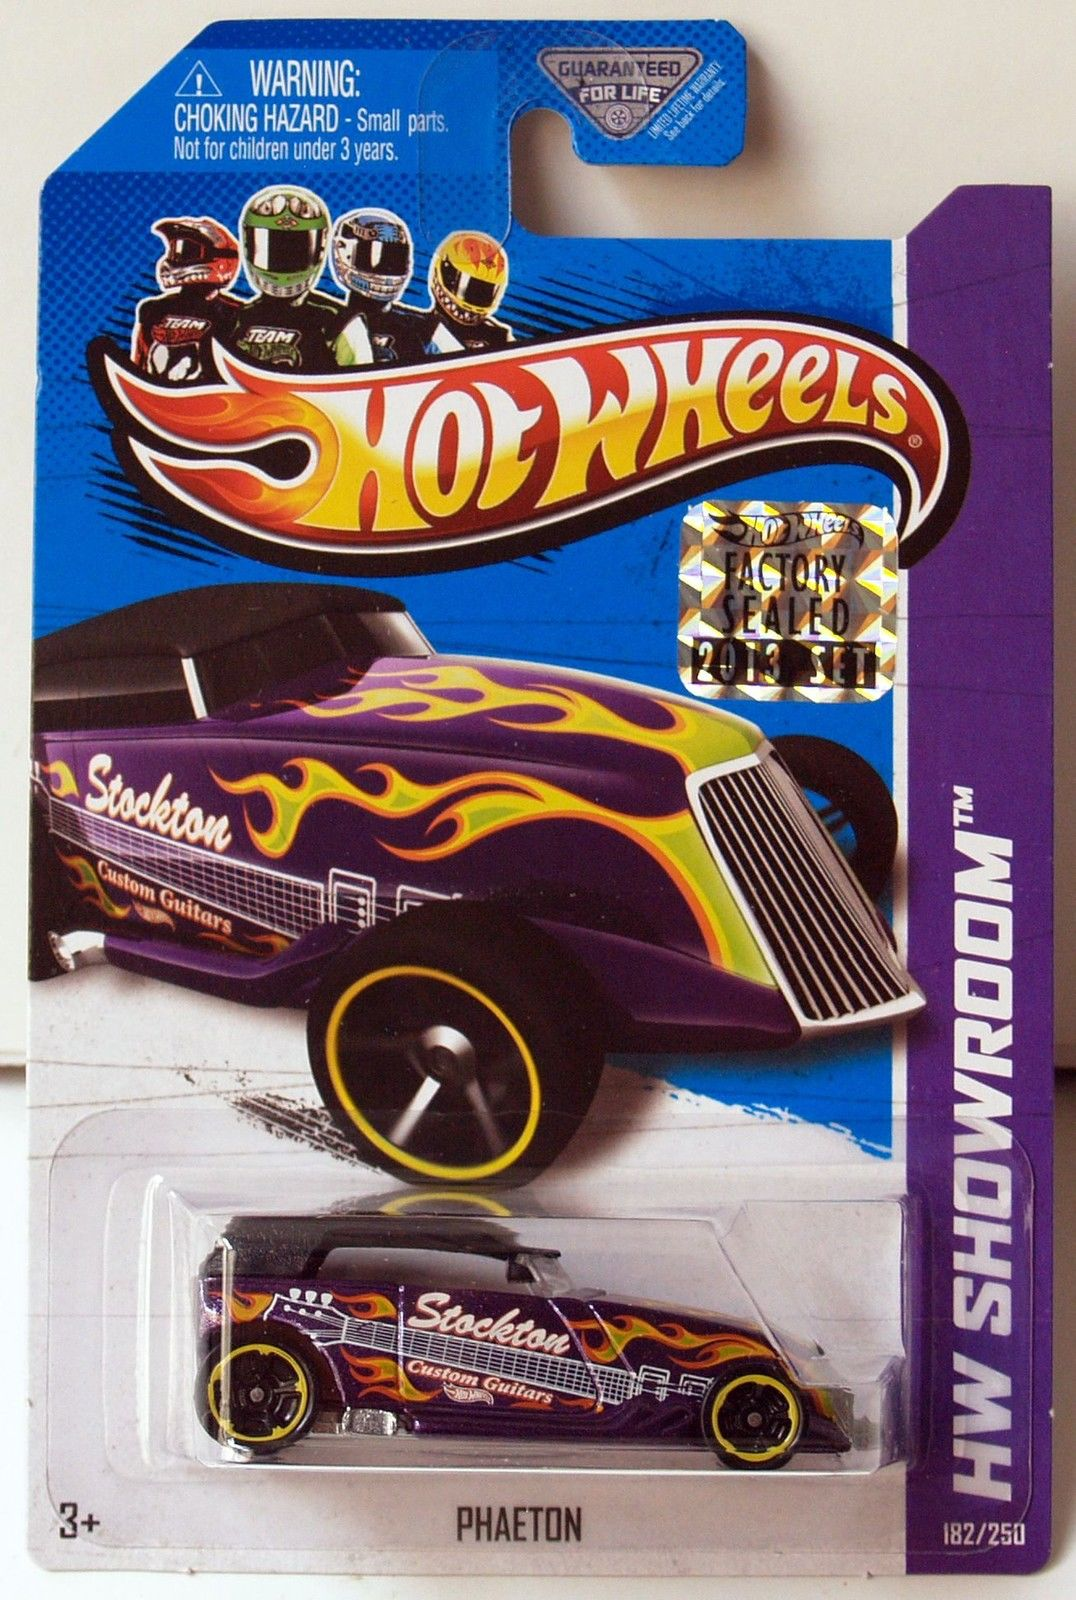 HOT WHEELS 2013 HW SHOWROOM AMERICAN TURBO PHAETON FACTORY SEALED